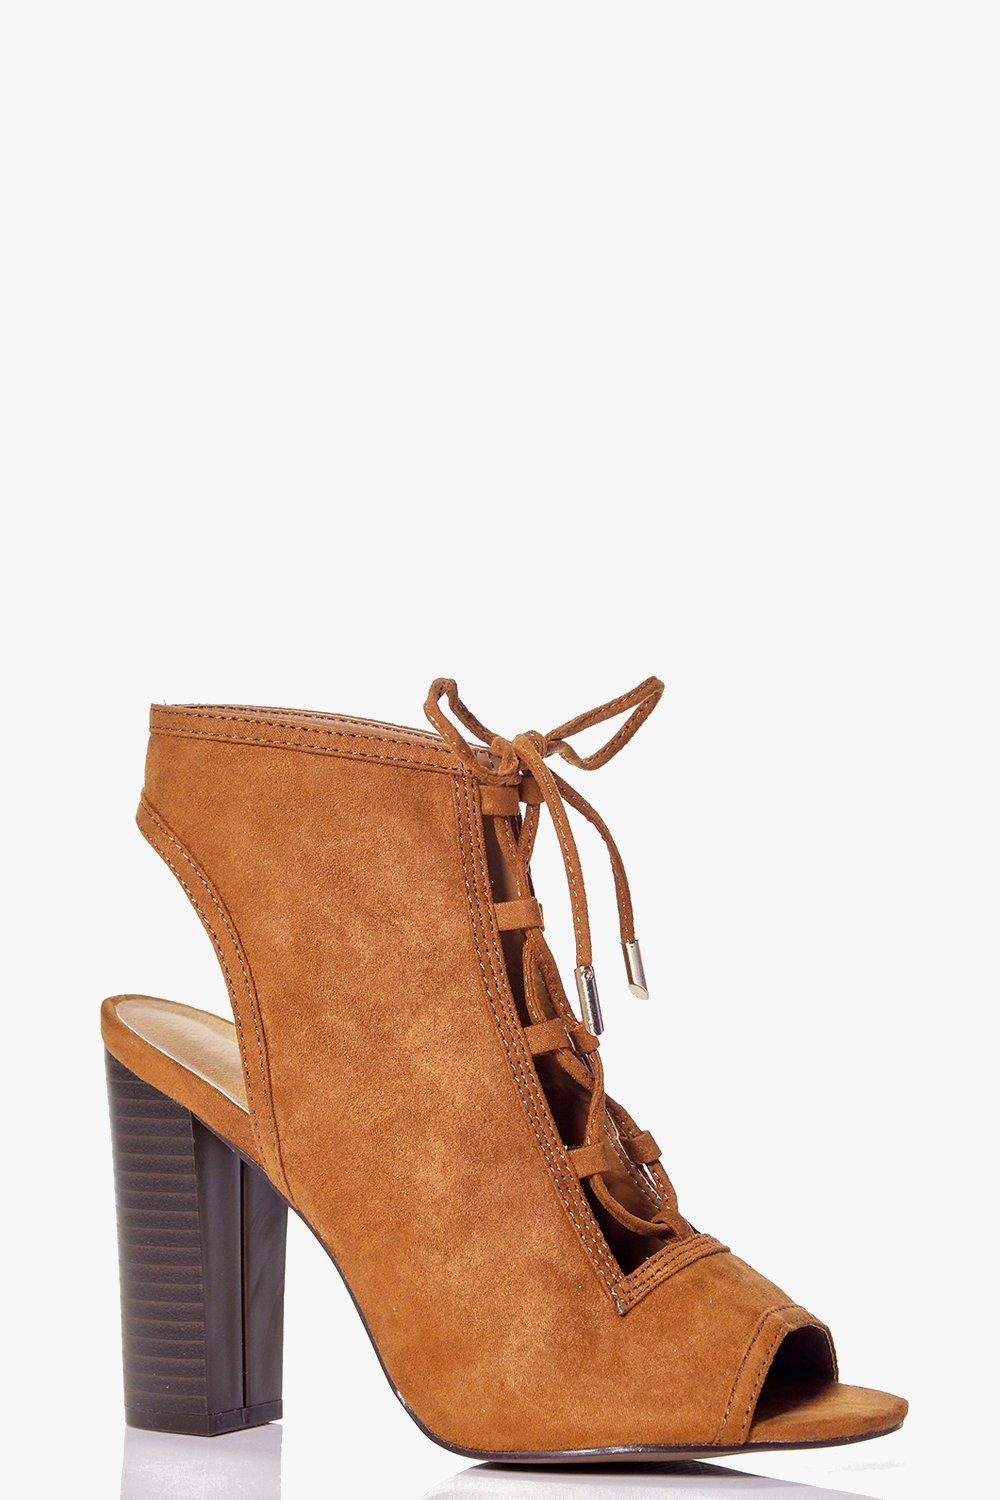 Skye Lace Up Peeptoe Shoe Boot